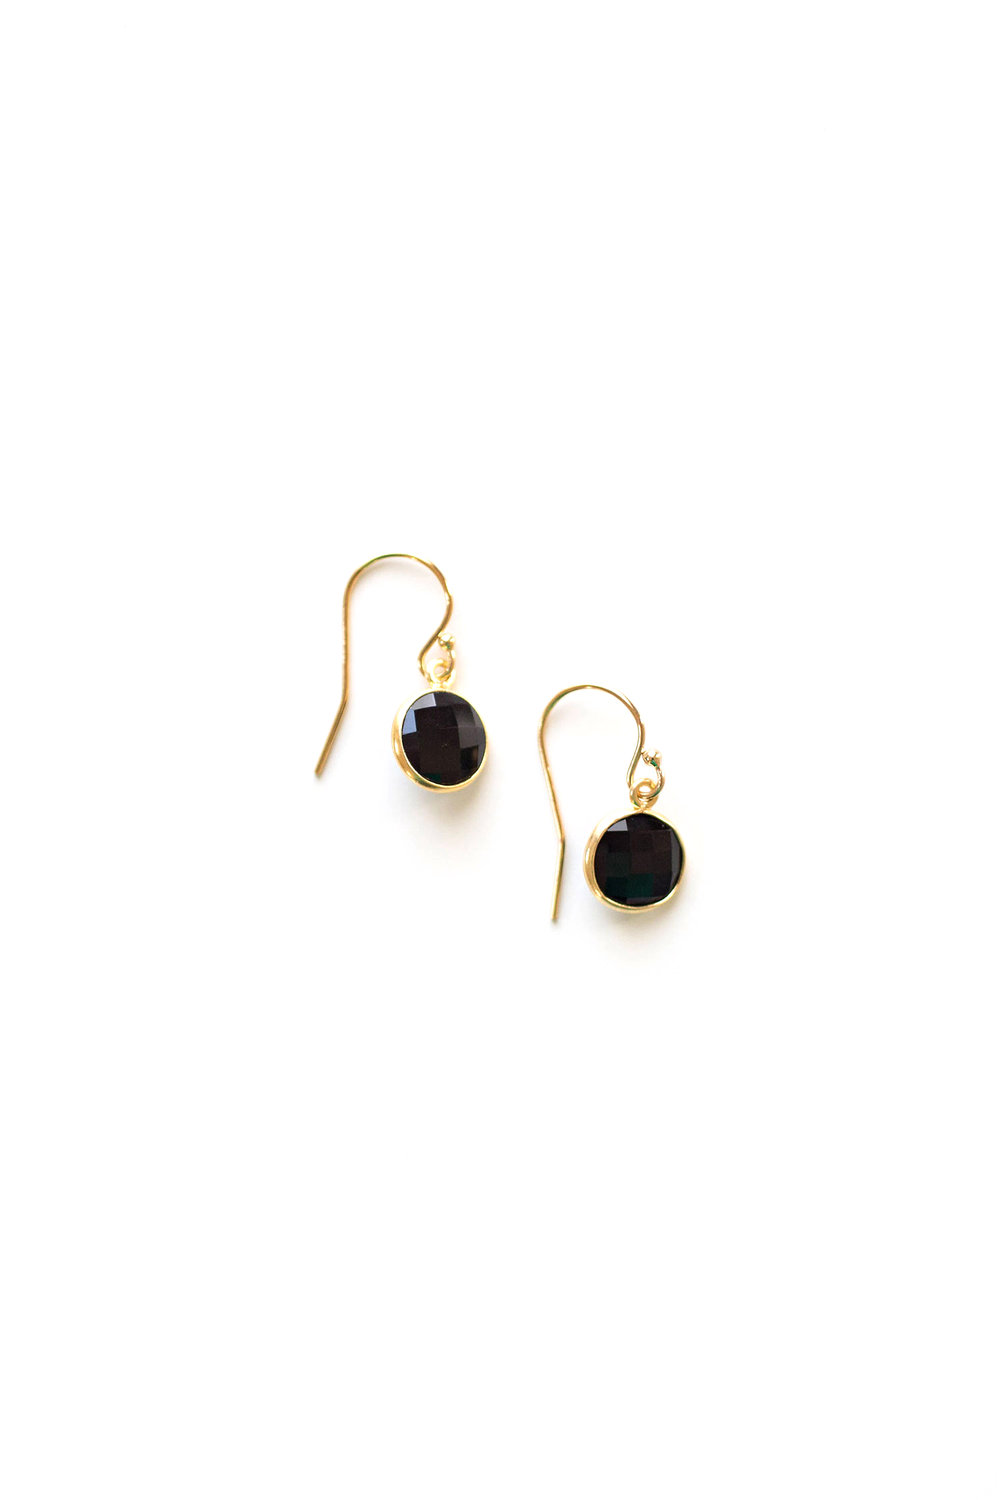 p cherry gem quartz earrings store fashion